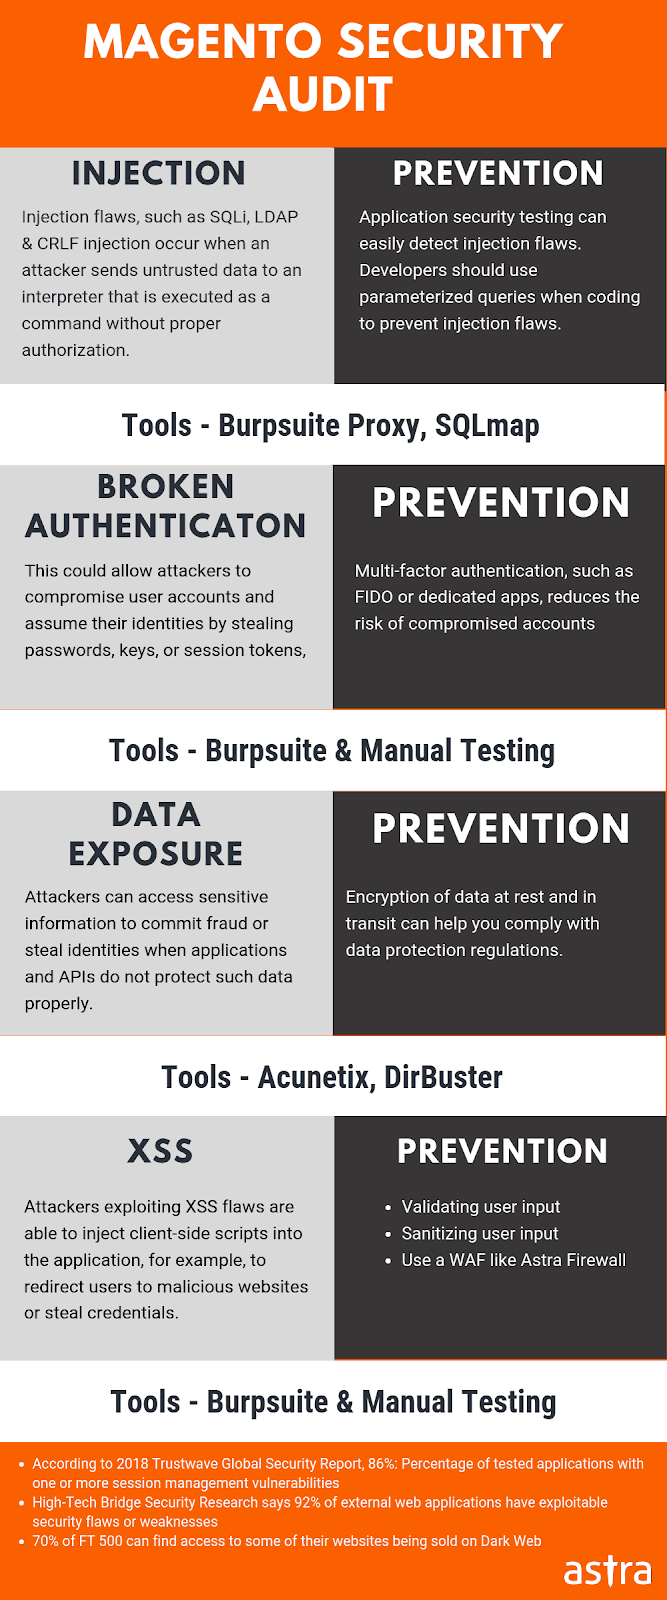 Magento Security Audit